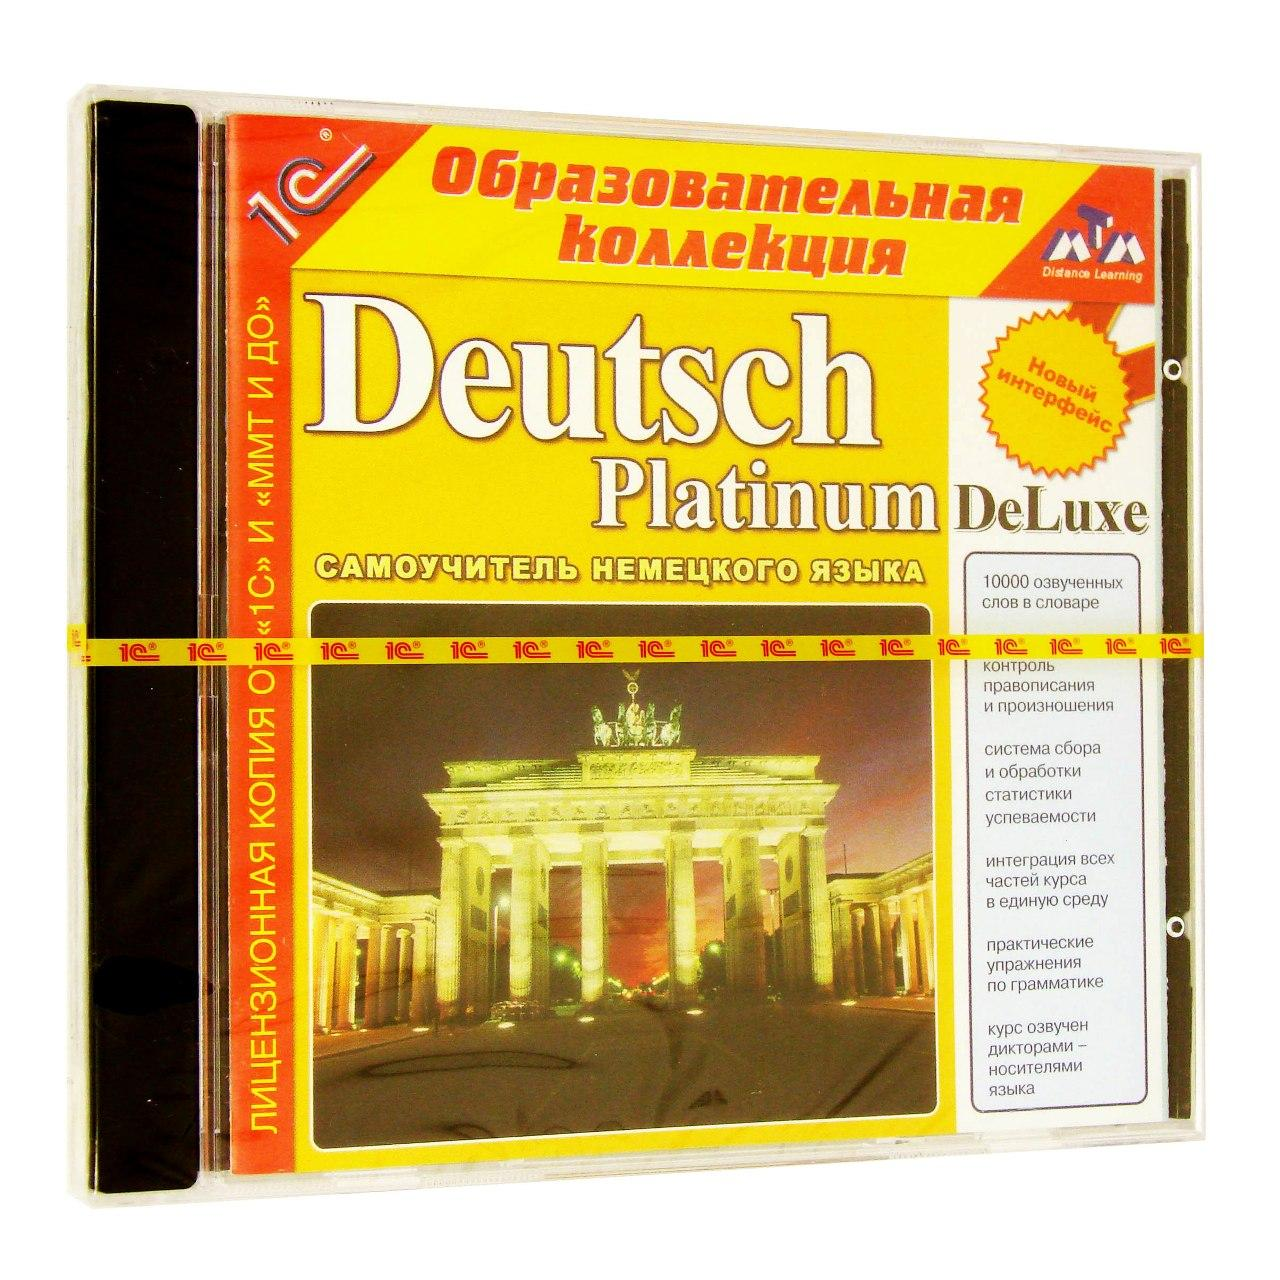 "Компьютерный компакт-диск Deutsch Platinum DeLuxe (PC), фирма ""1С"", 1CD"